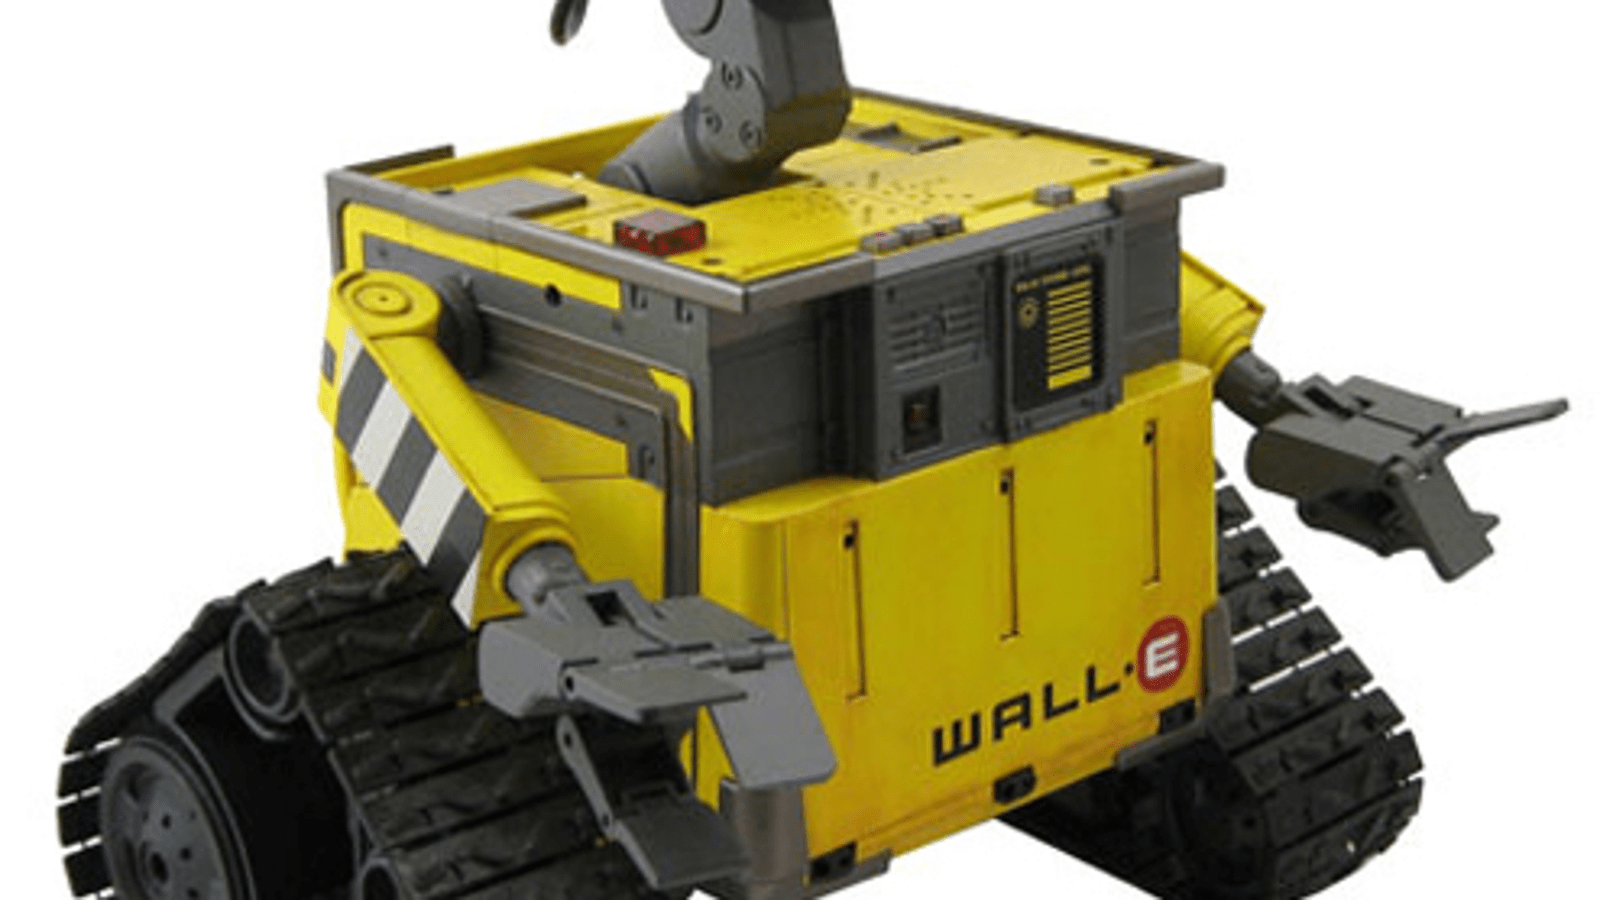 Ultimate Wall E Robot Being Brought To Life By Disney